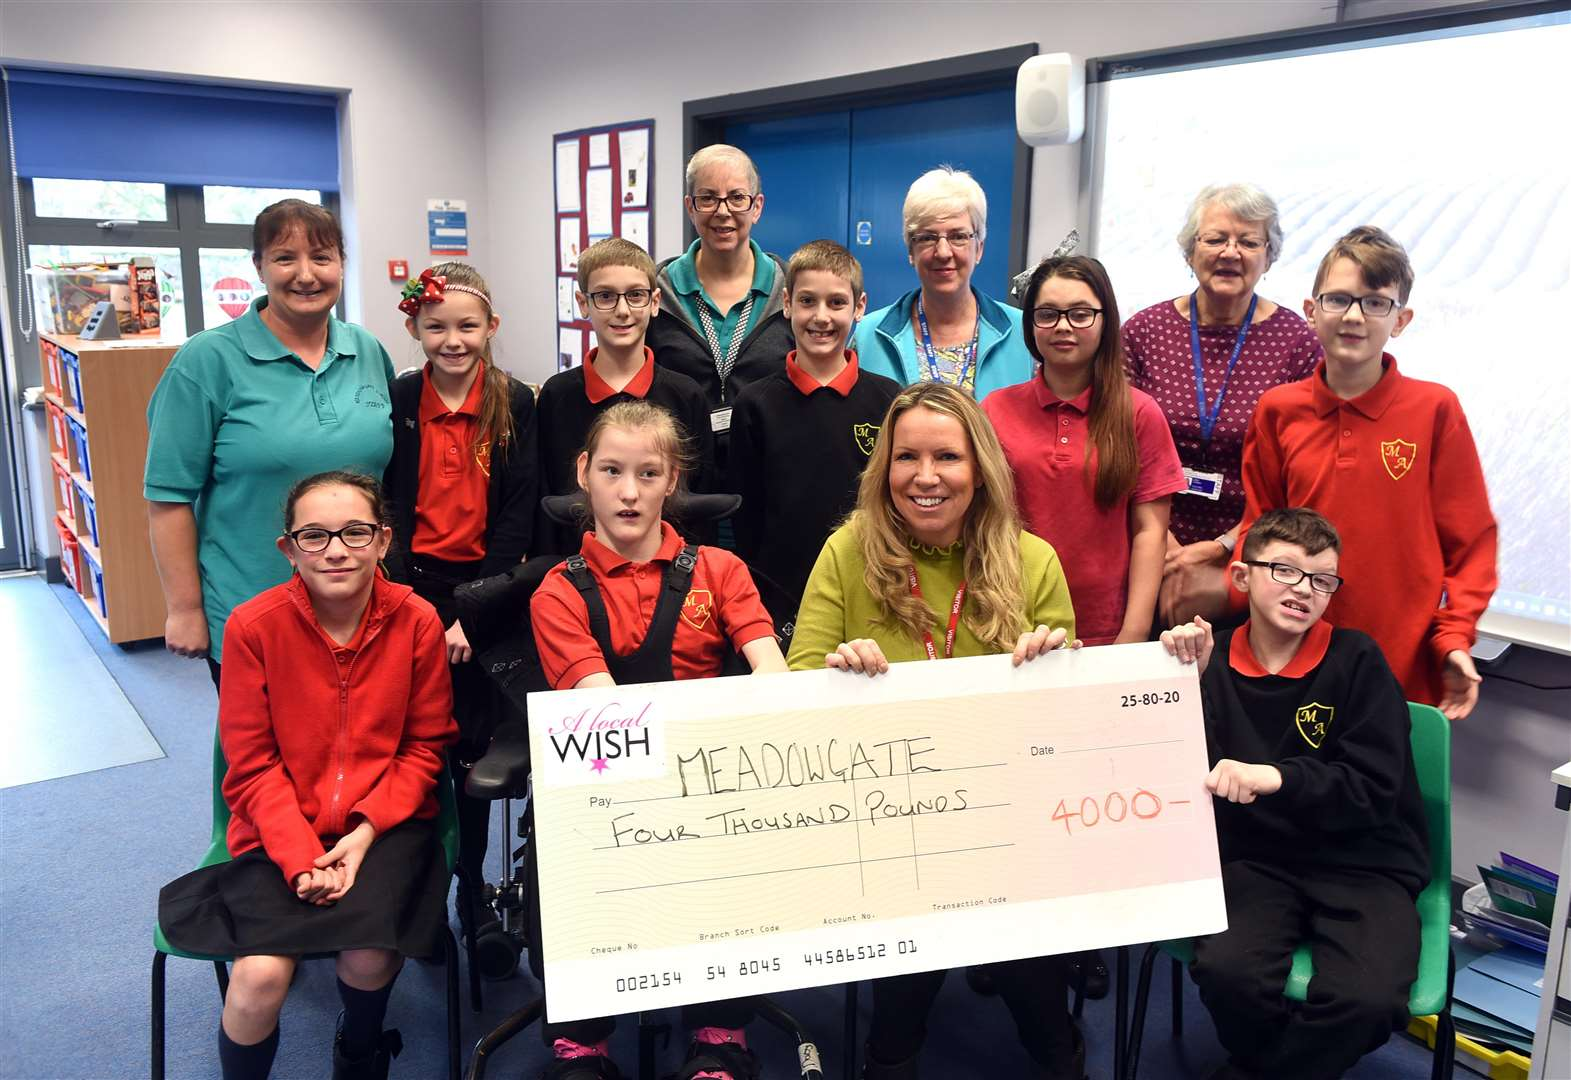 Wisbech-based A Local Wish hands over £4,000 to Meadowgate Academy's minibus appeal